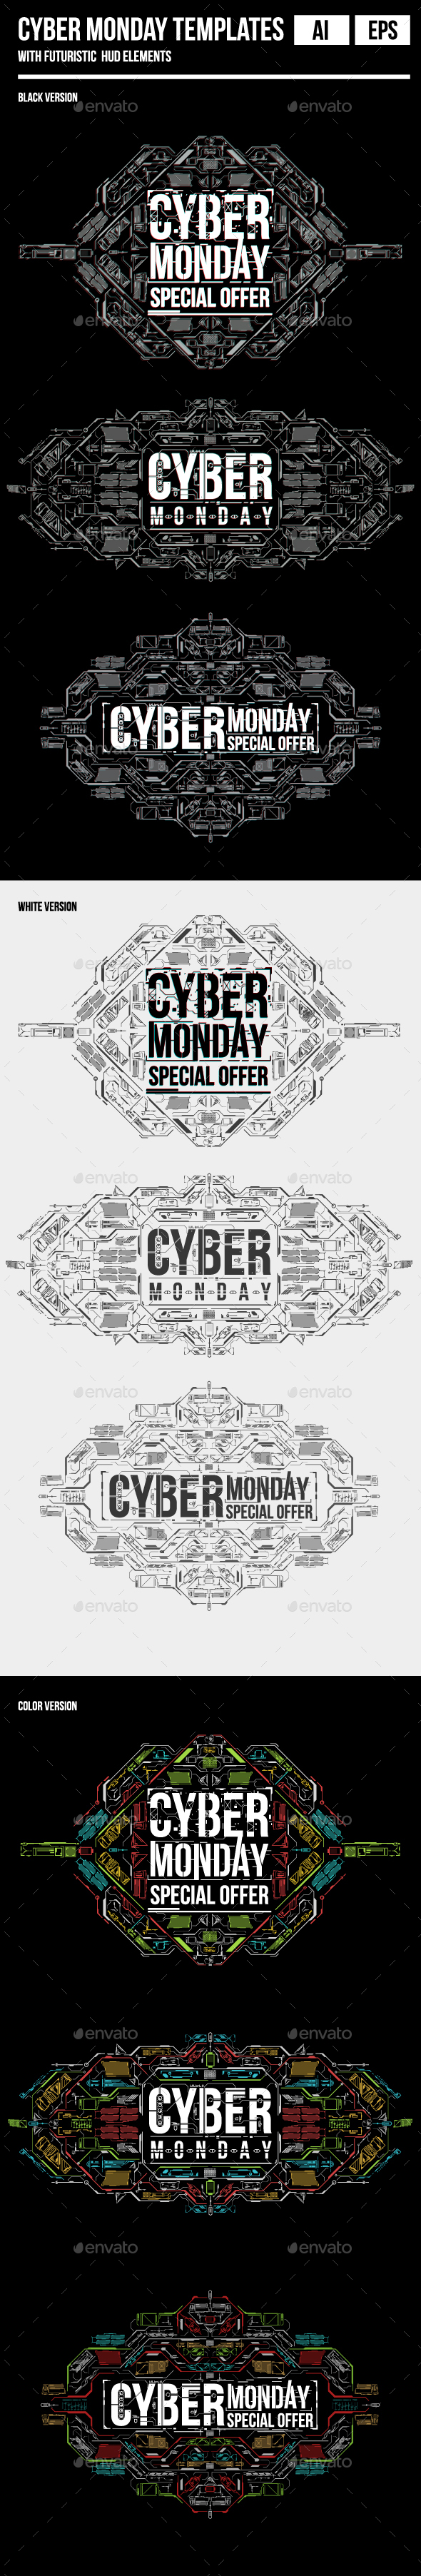 Cyber Monday Templates with Futuristic Background - Retail Commercial / Shopping